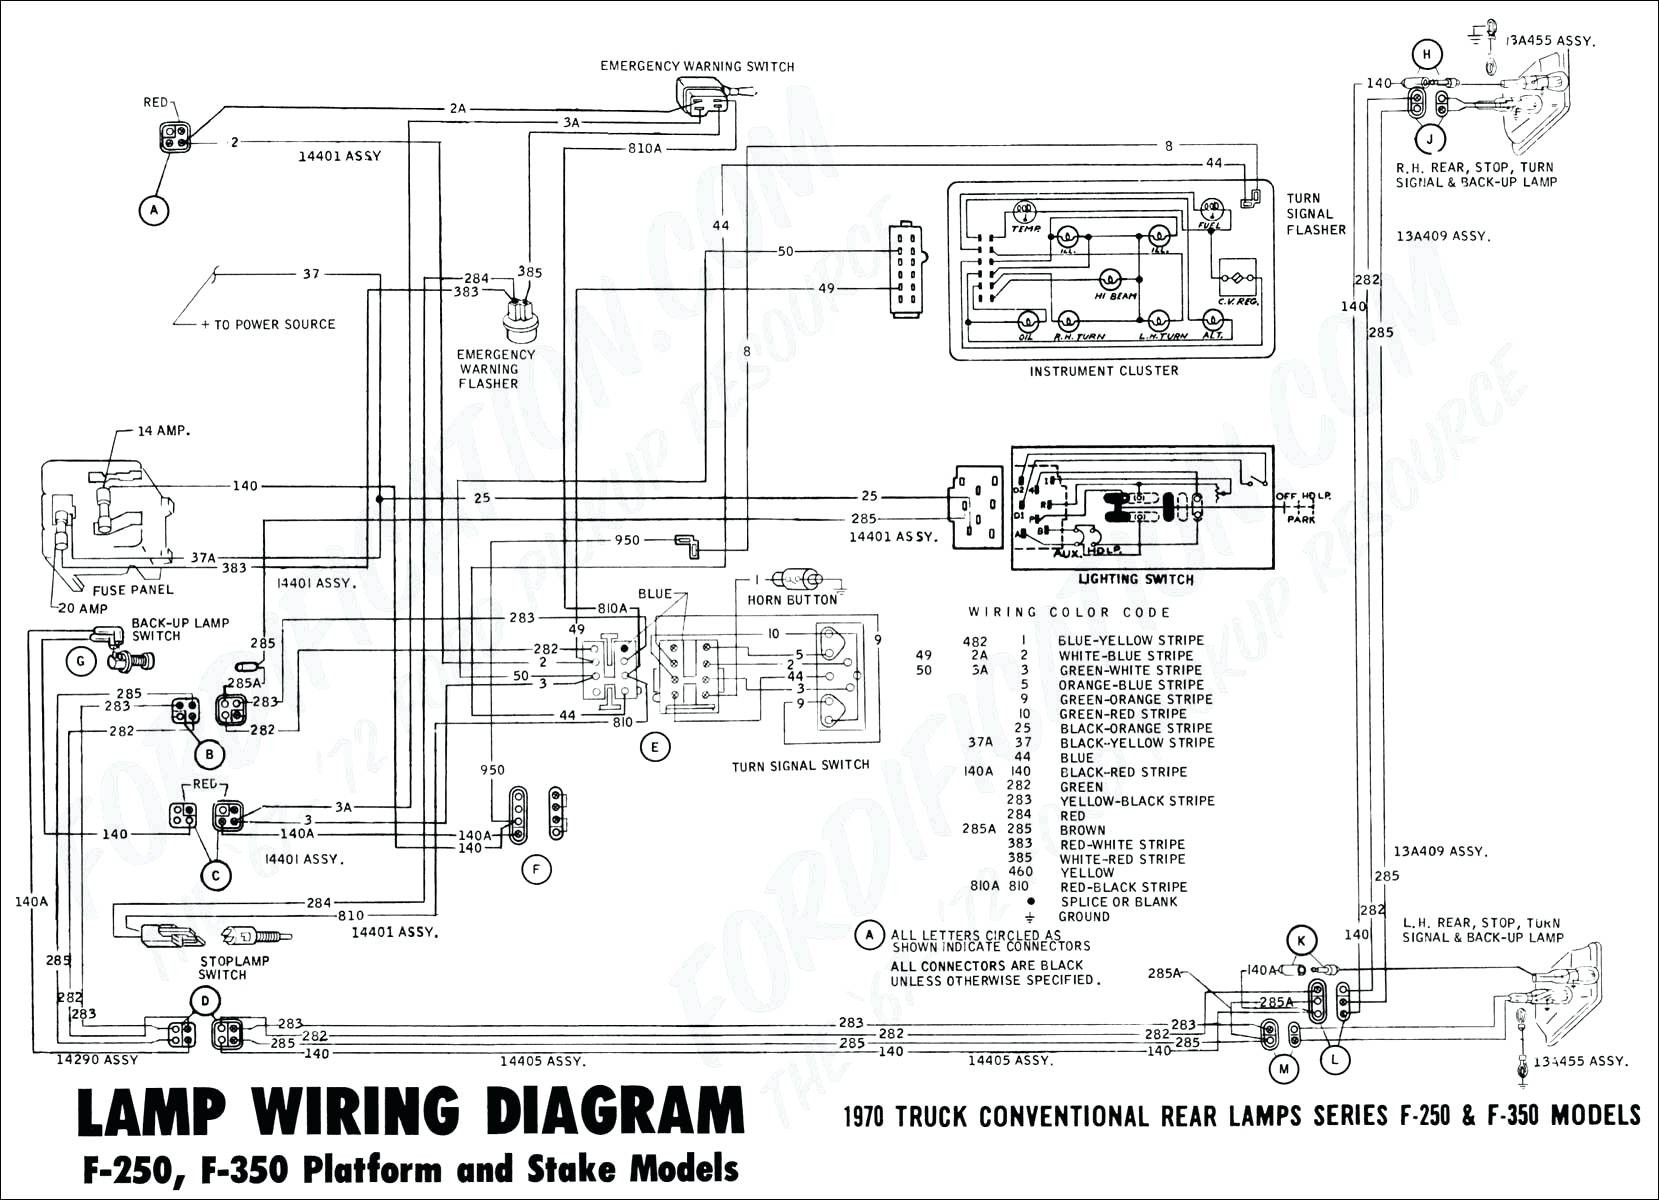 Tail Light Wiring Diagram 1996 Chevy Truck Solutions 2005 Silverado